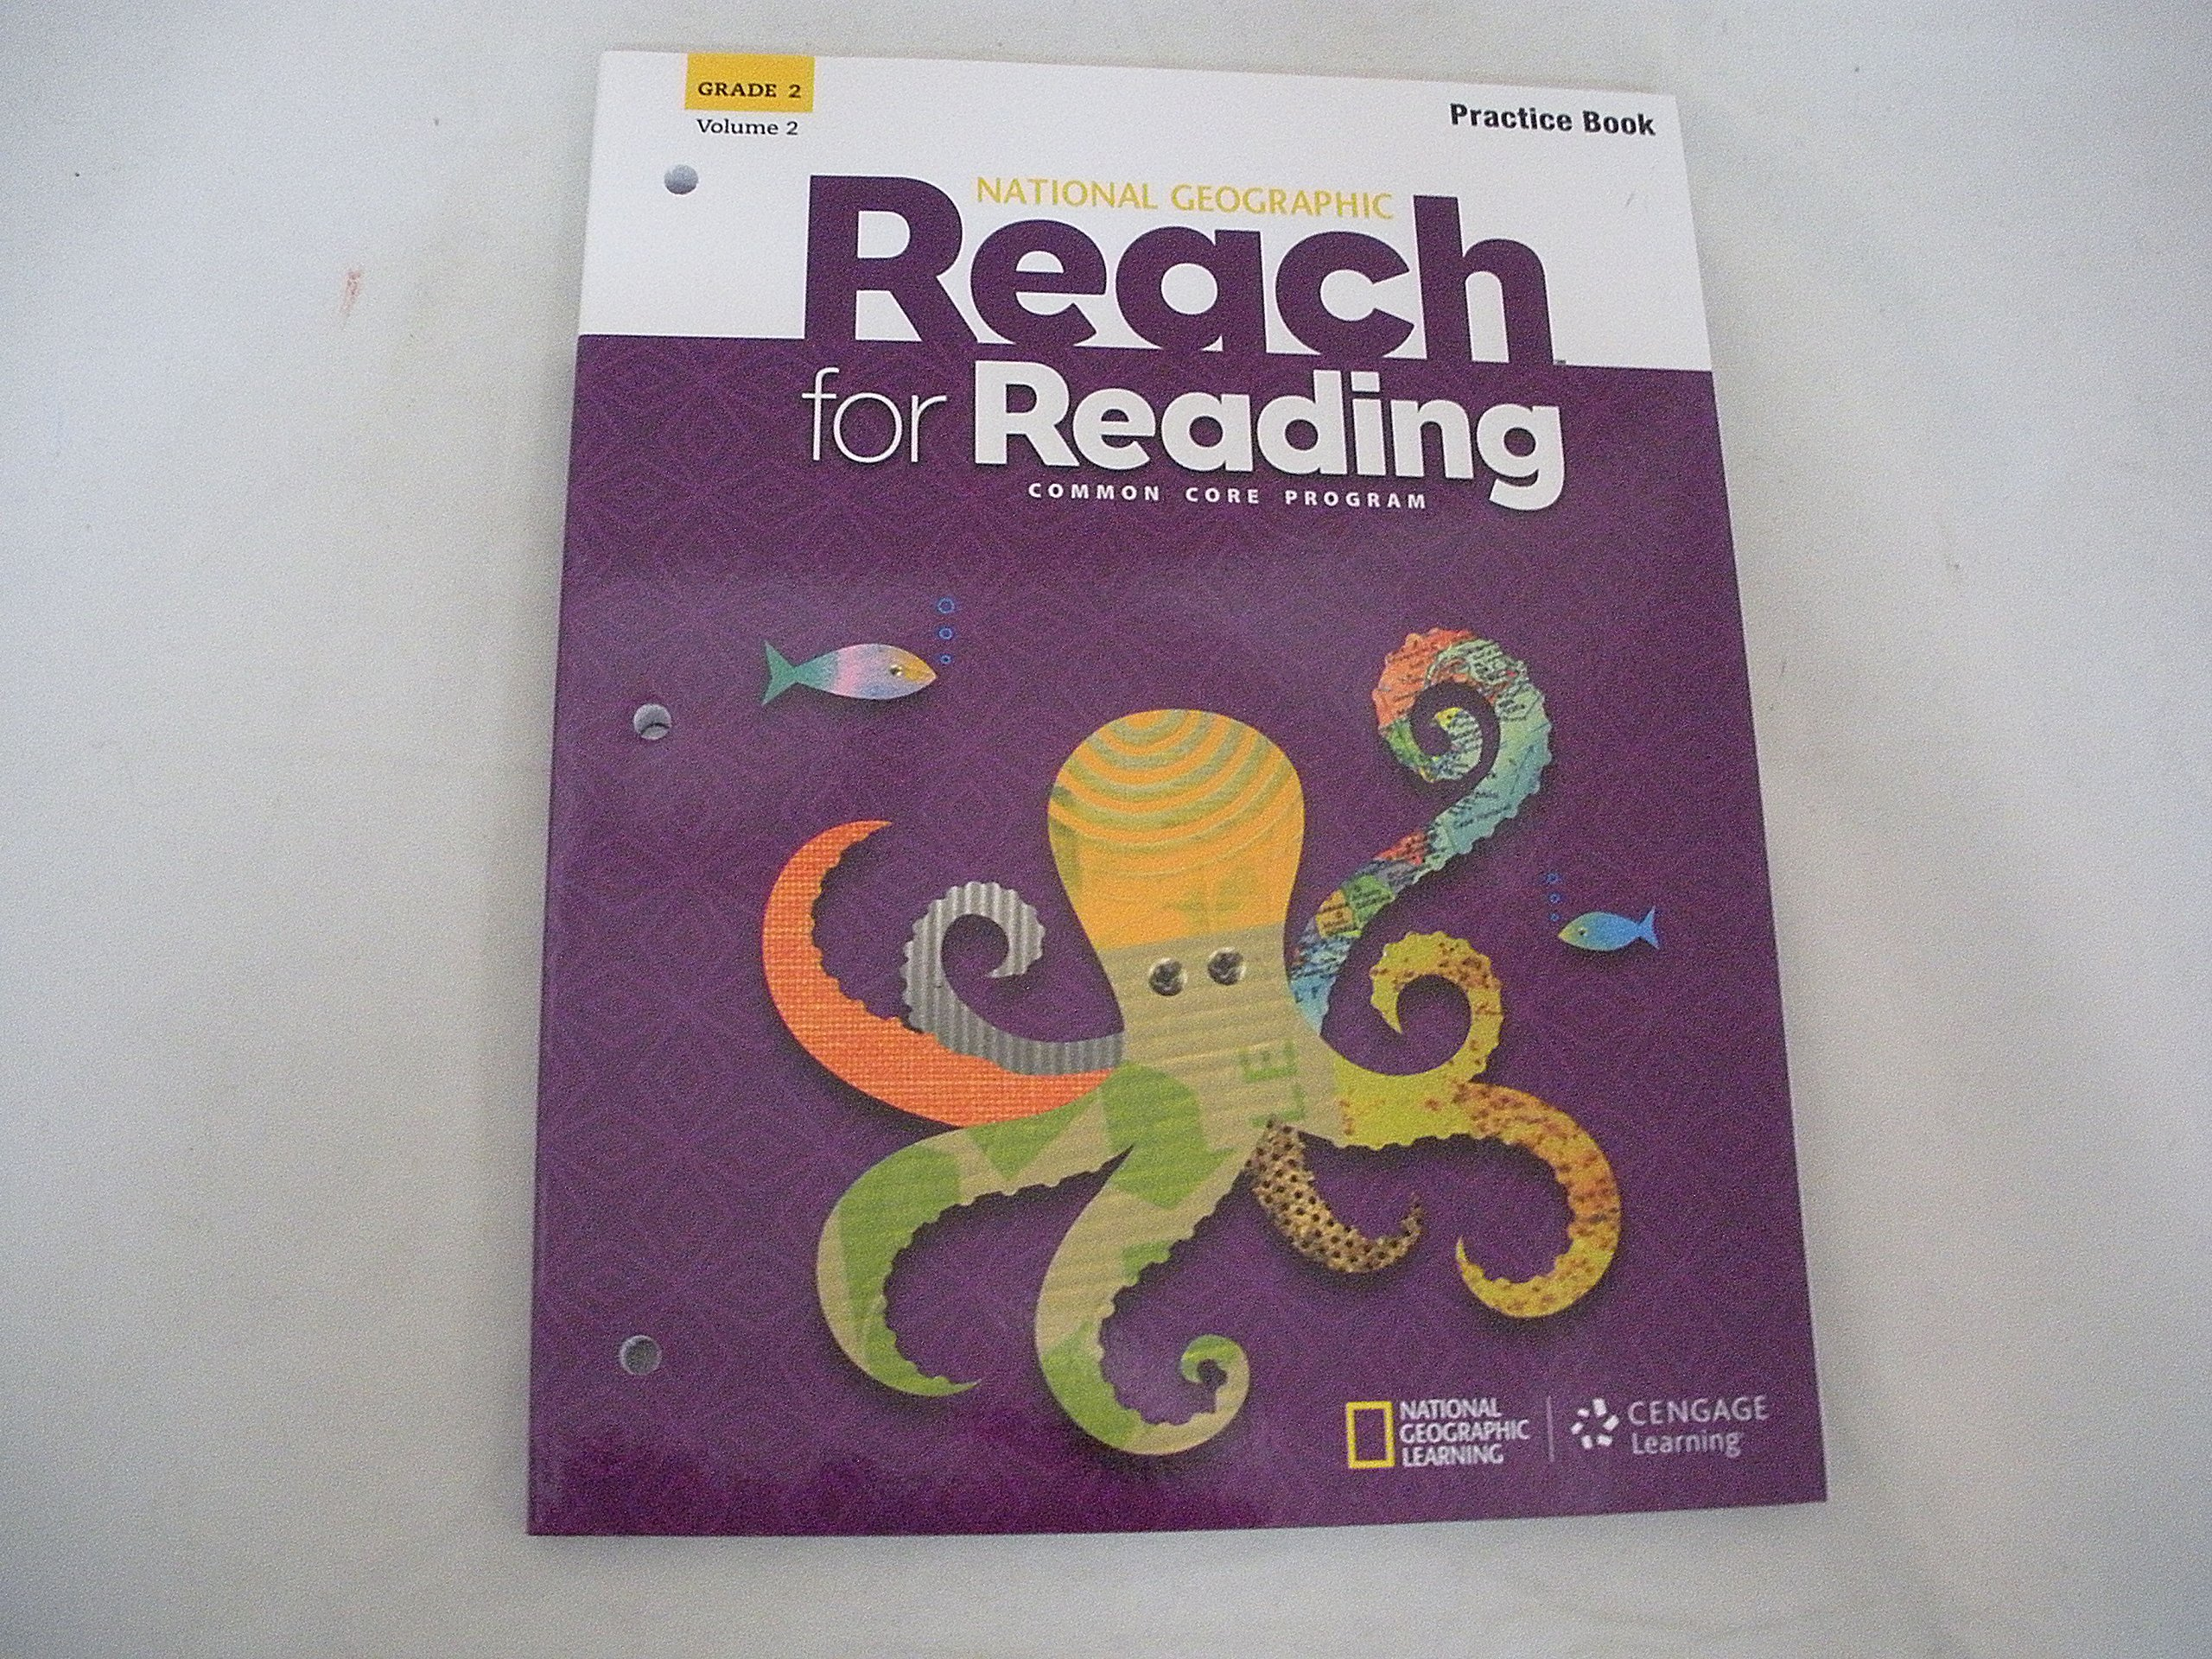 Reach for Reading, Common Core Program, Grade 2, Volume 2, Units 5-8, Practice  Book, ISBN-10: 1305499026 ISBN-13: 9781305499027, 2017: Cenage Learning: ...